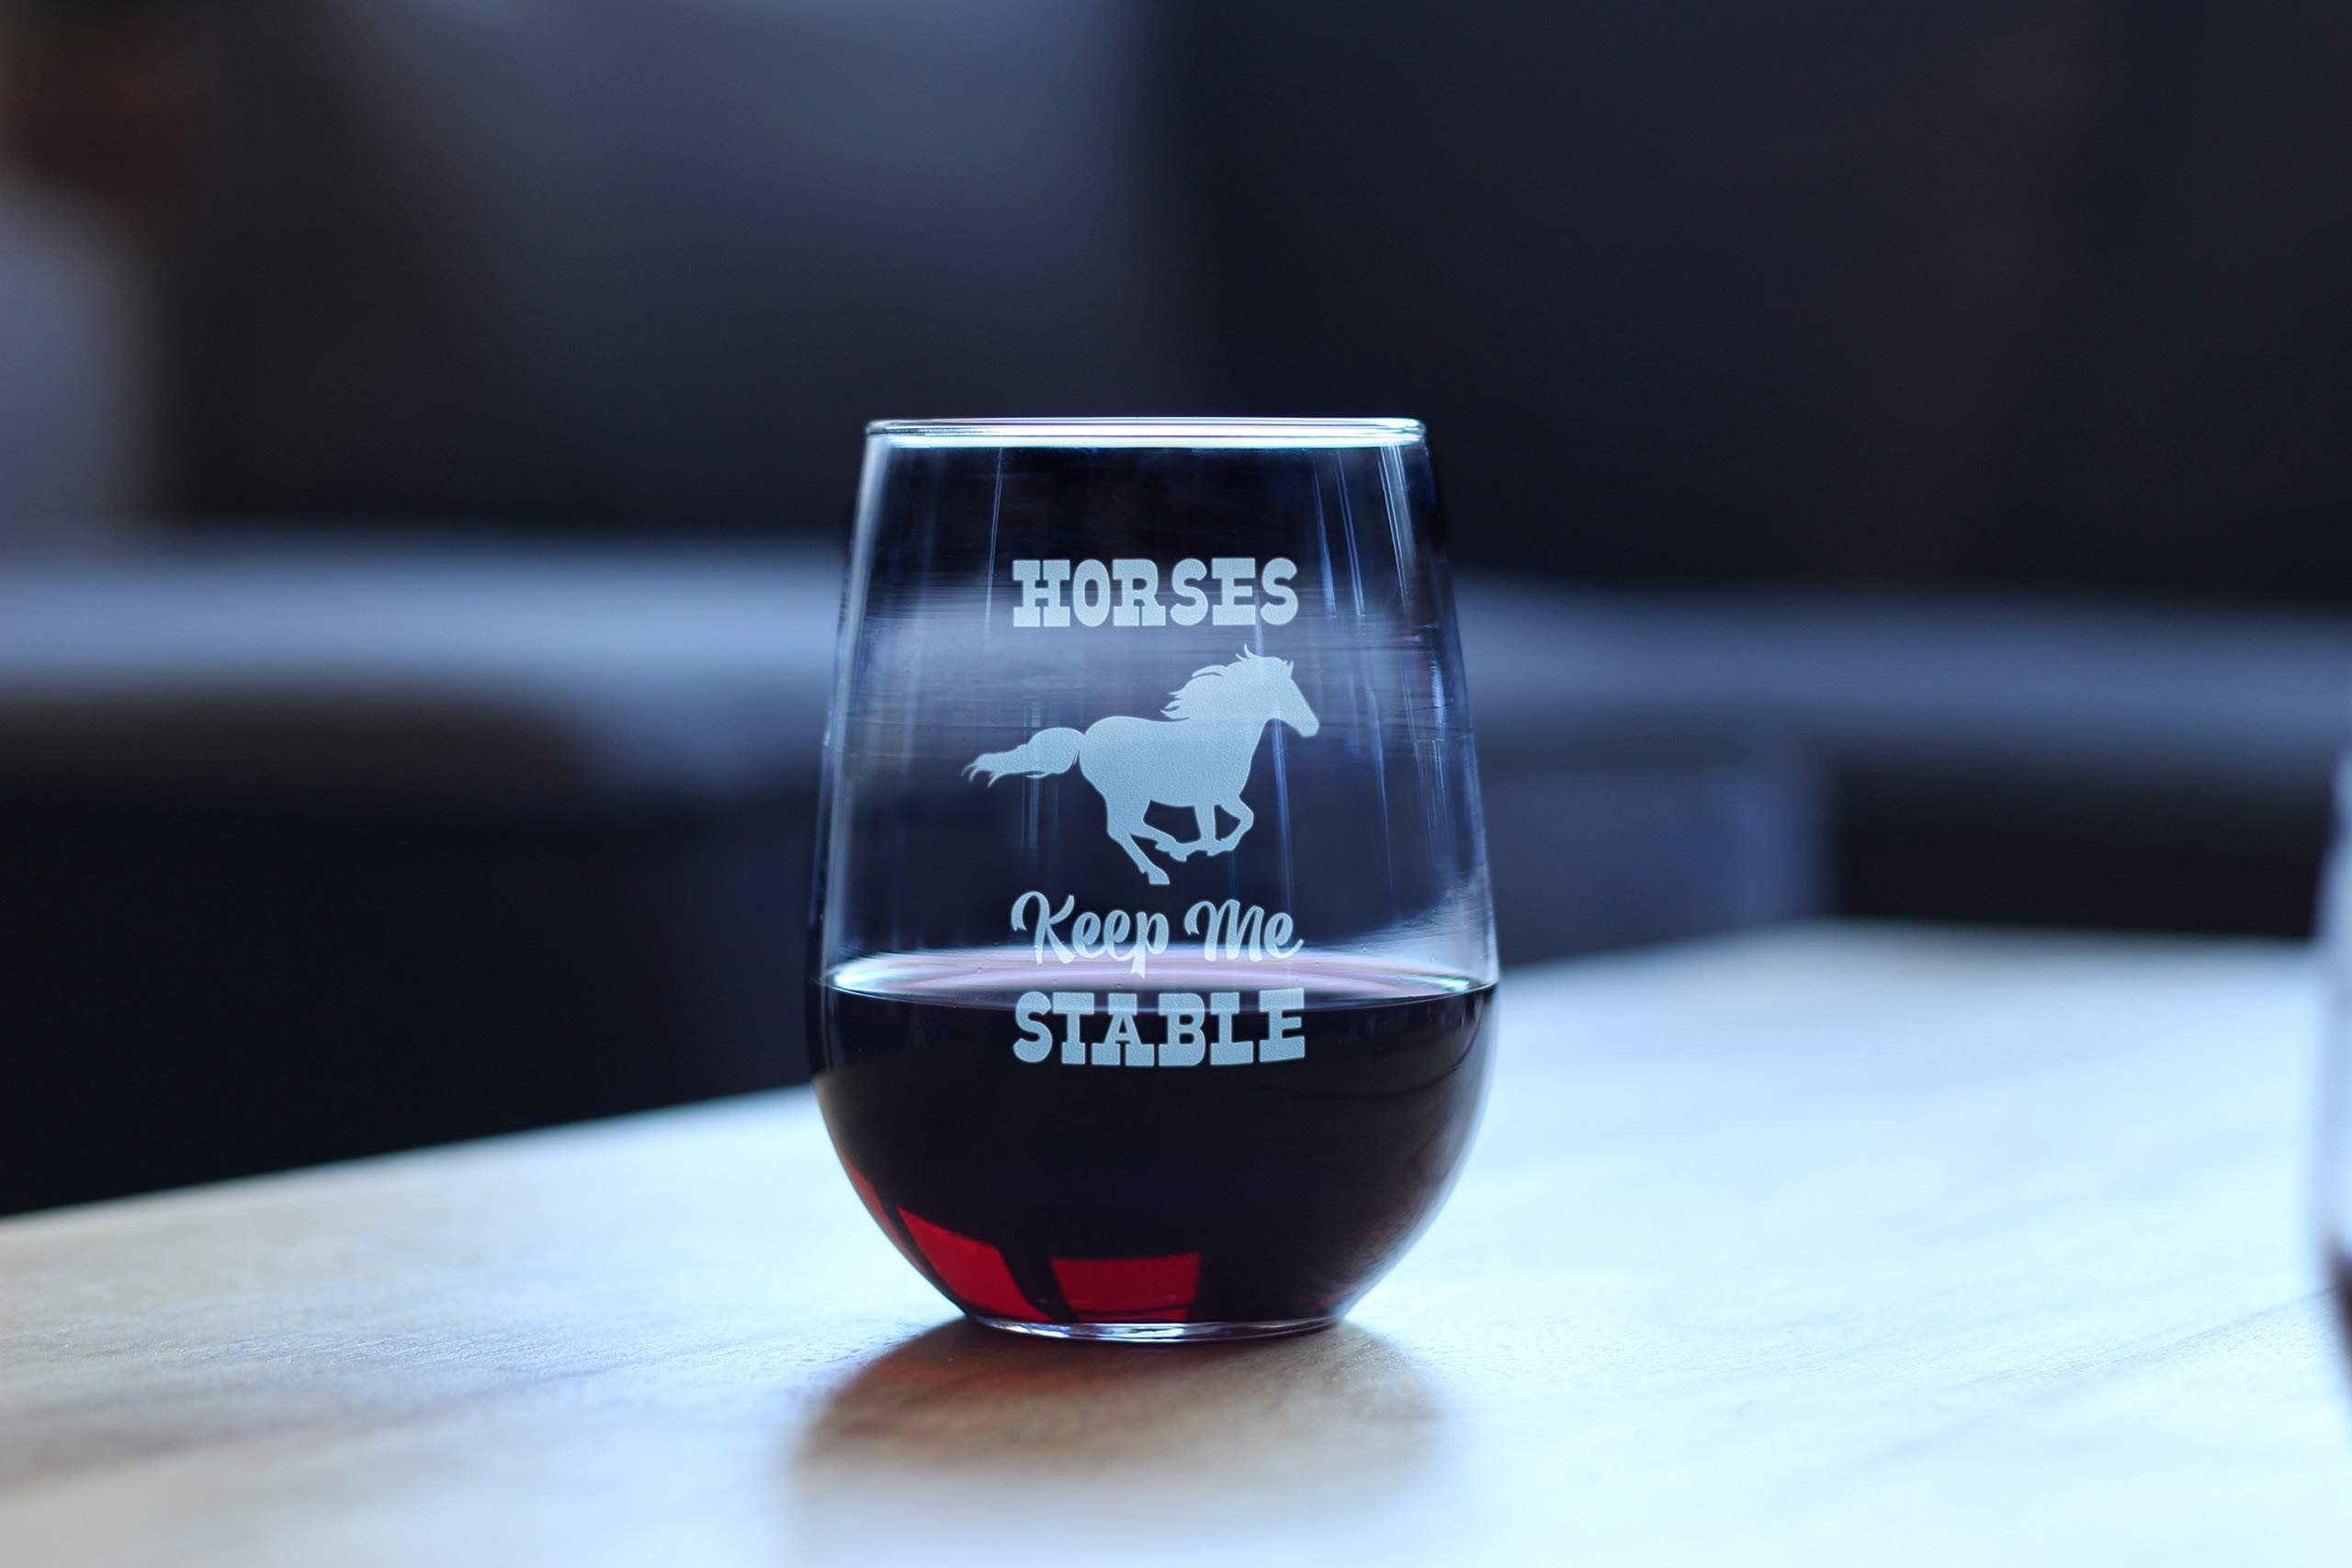 Horses Keep Me Stable – Cute Funny Stemless Wine Glass, Large 17 Ounces, Etched Sayings, Gift Box